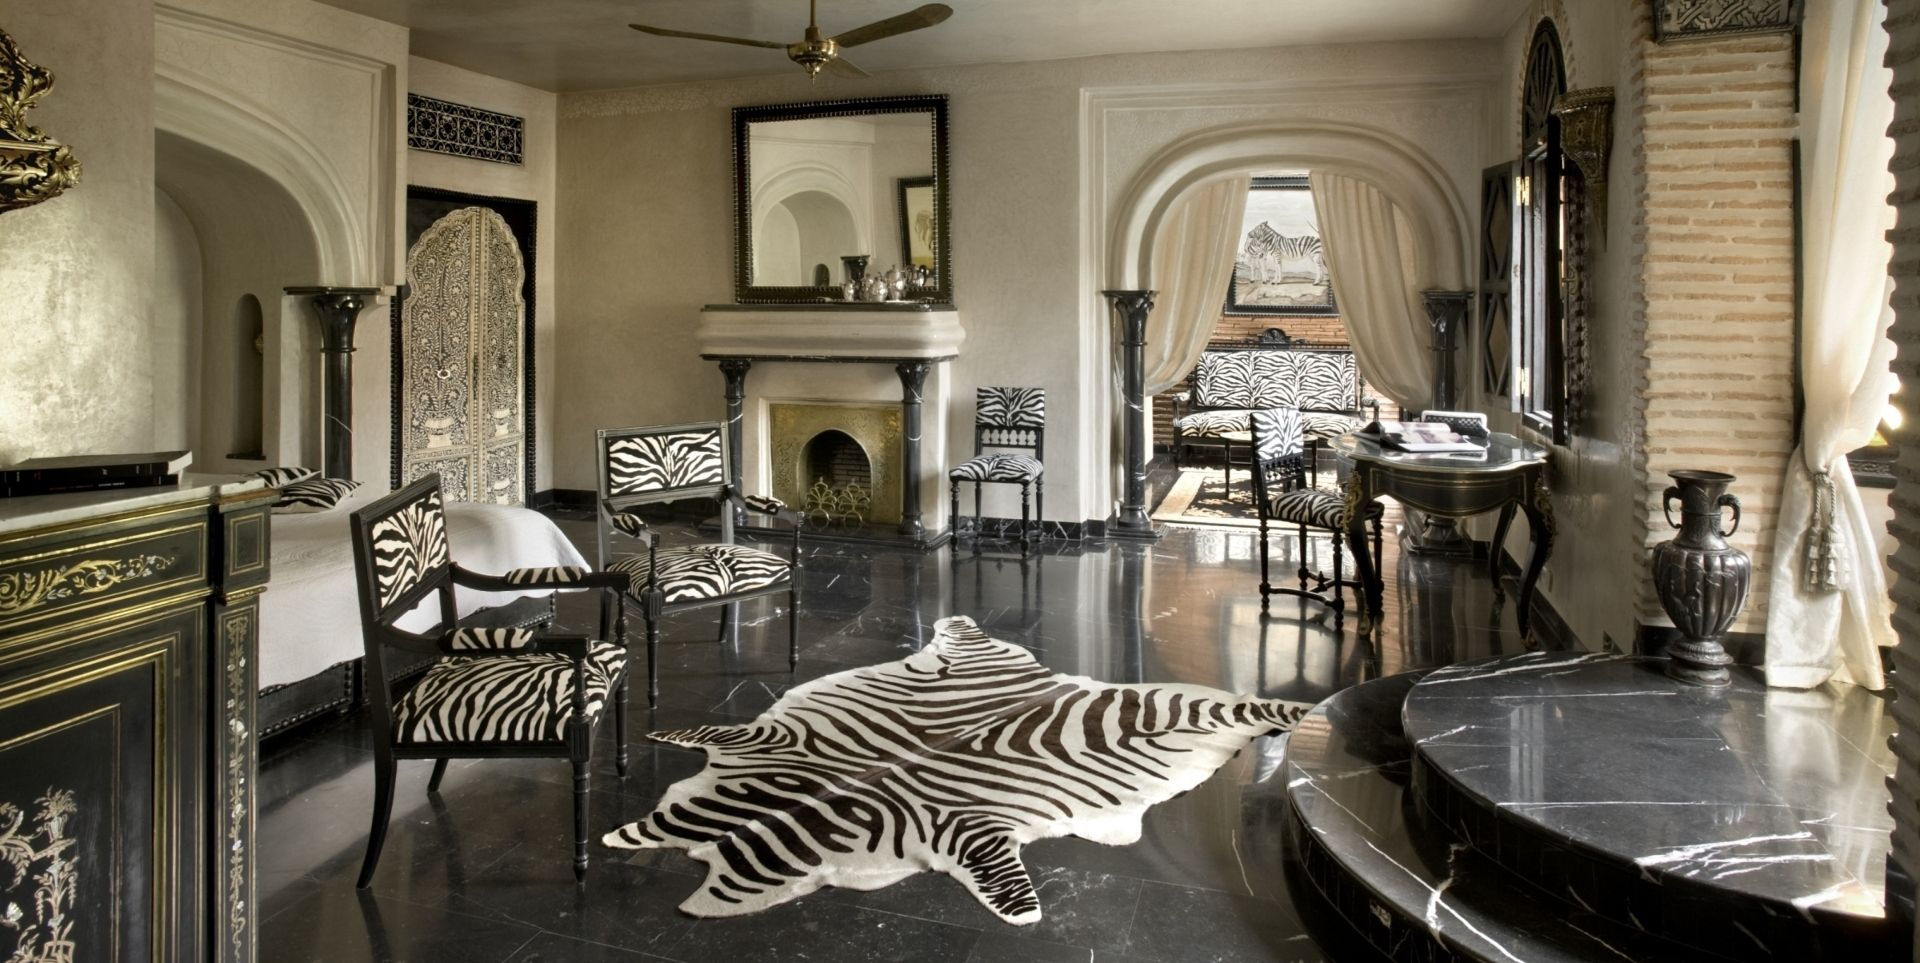 Individually styled rooms